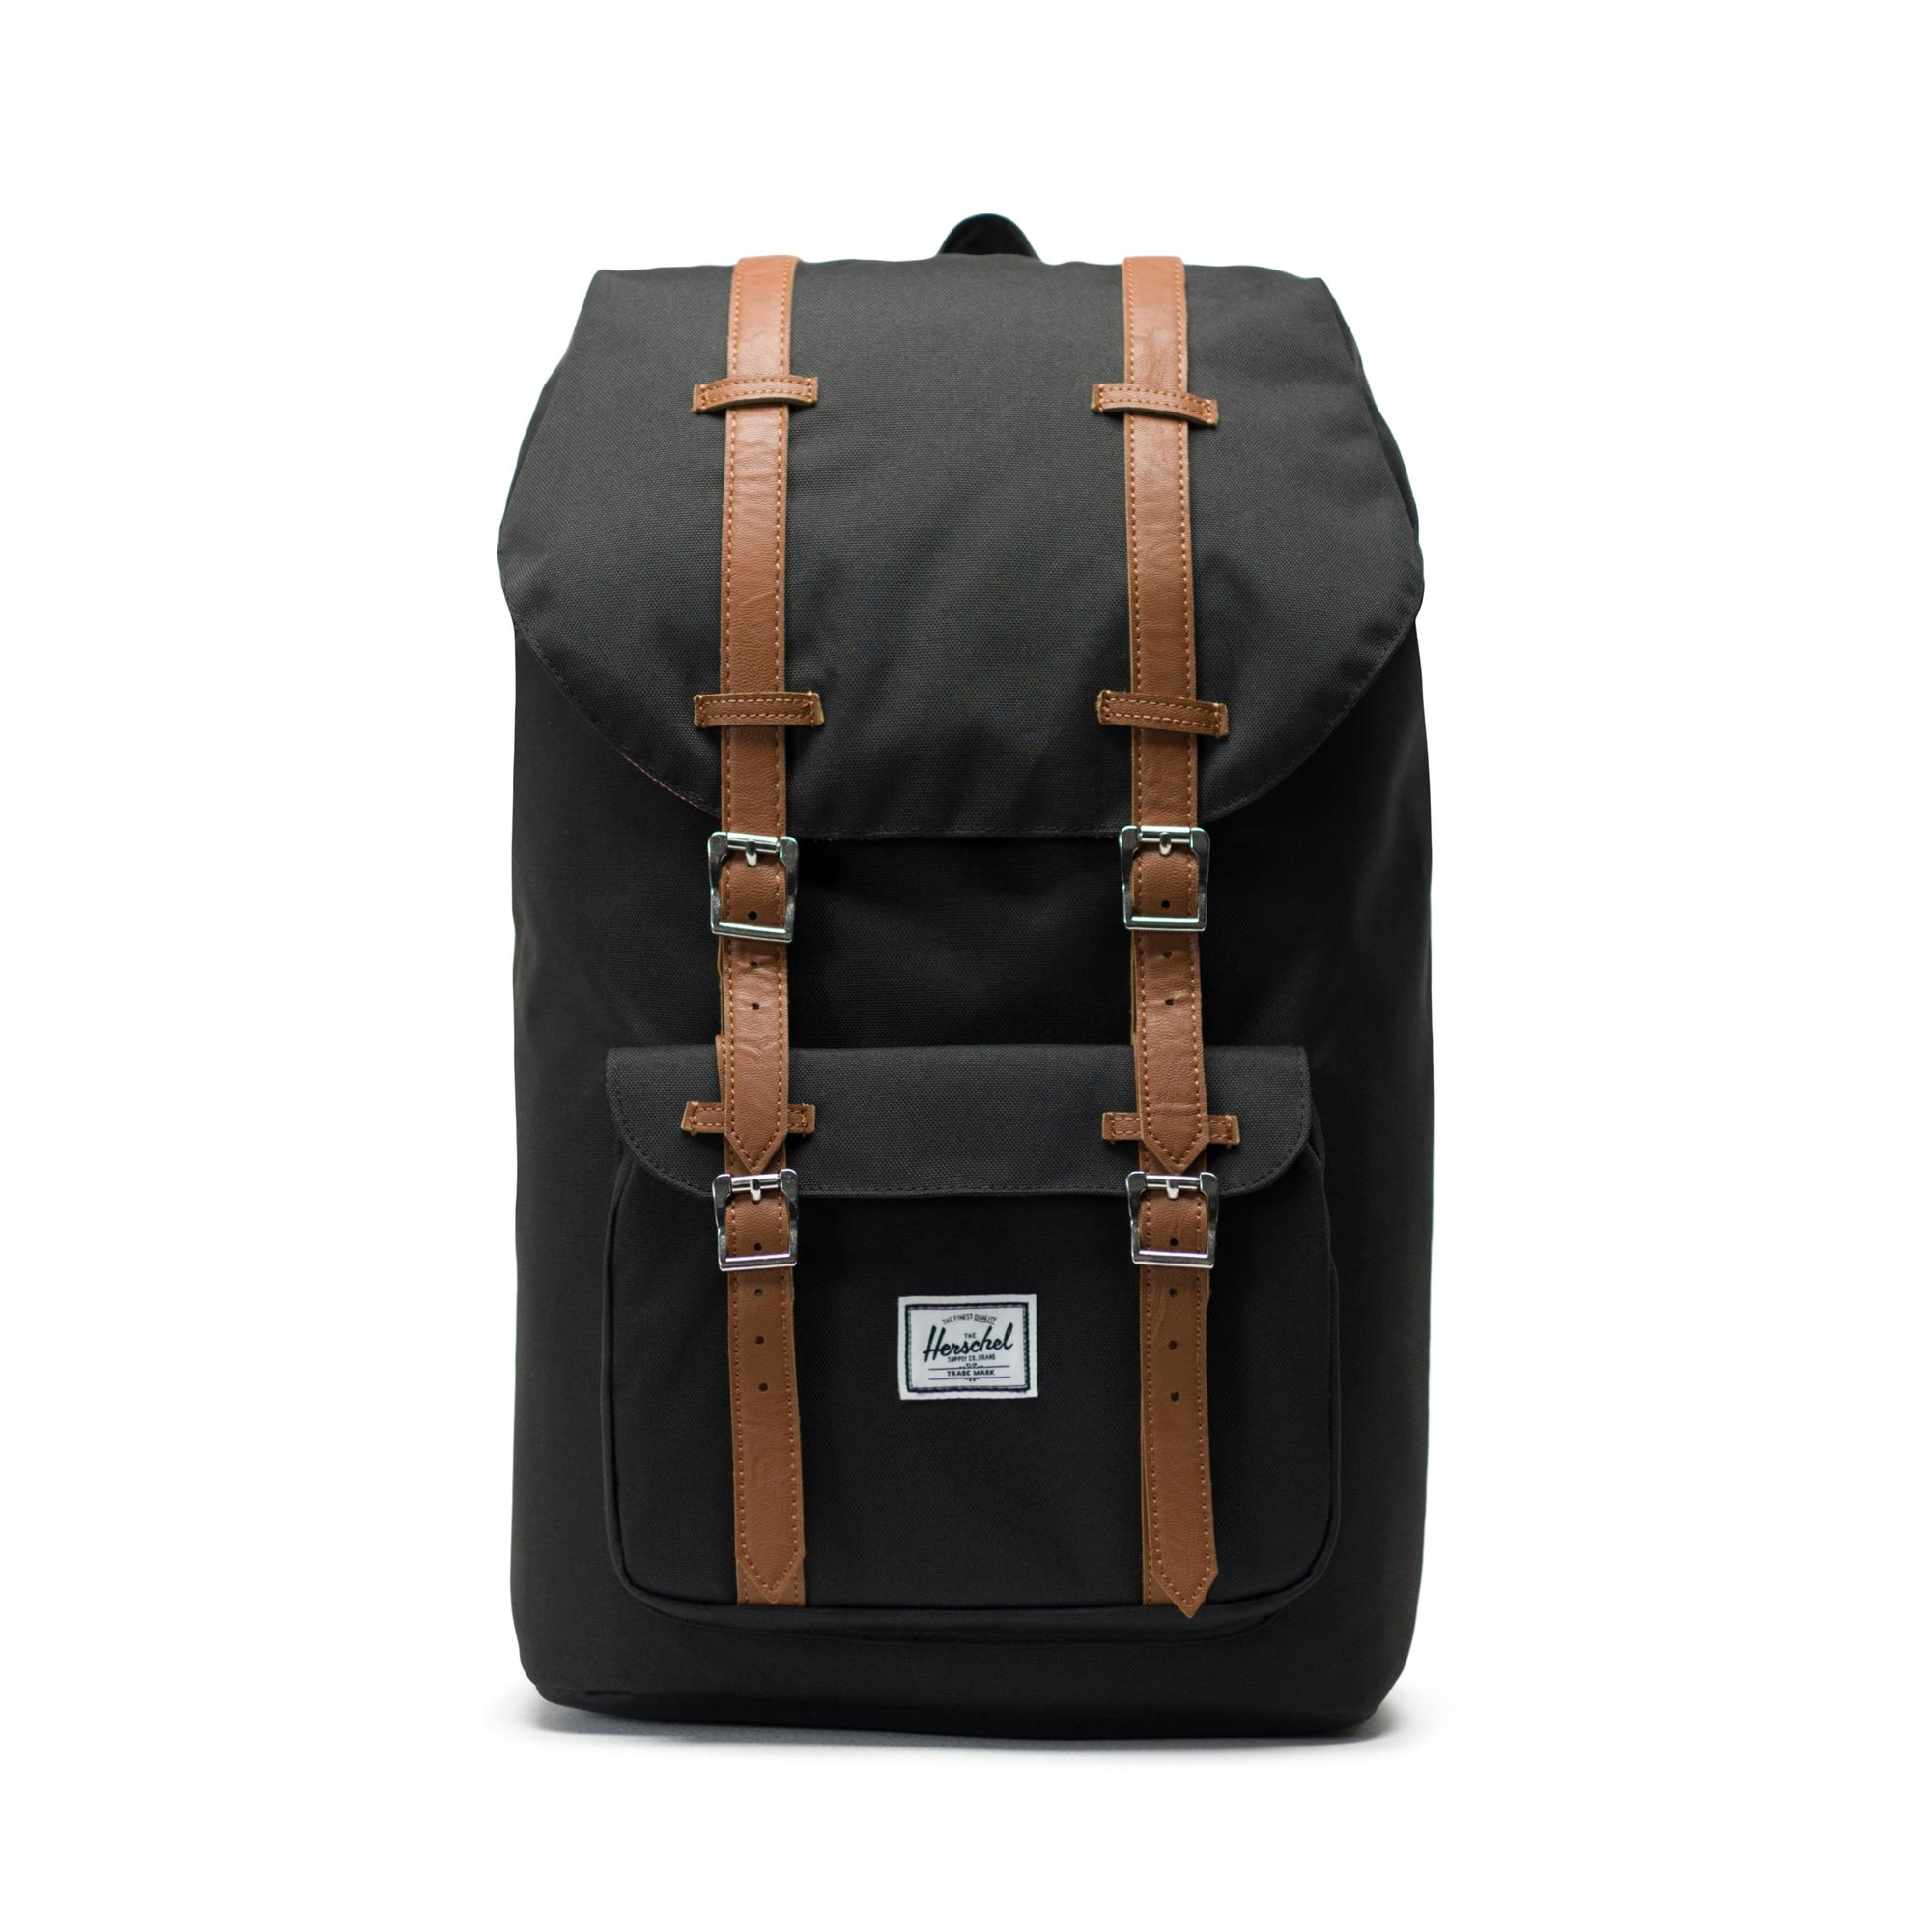 d19c4088c3a1 Herschel Little America Backpack